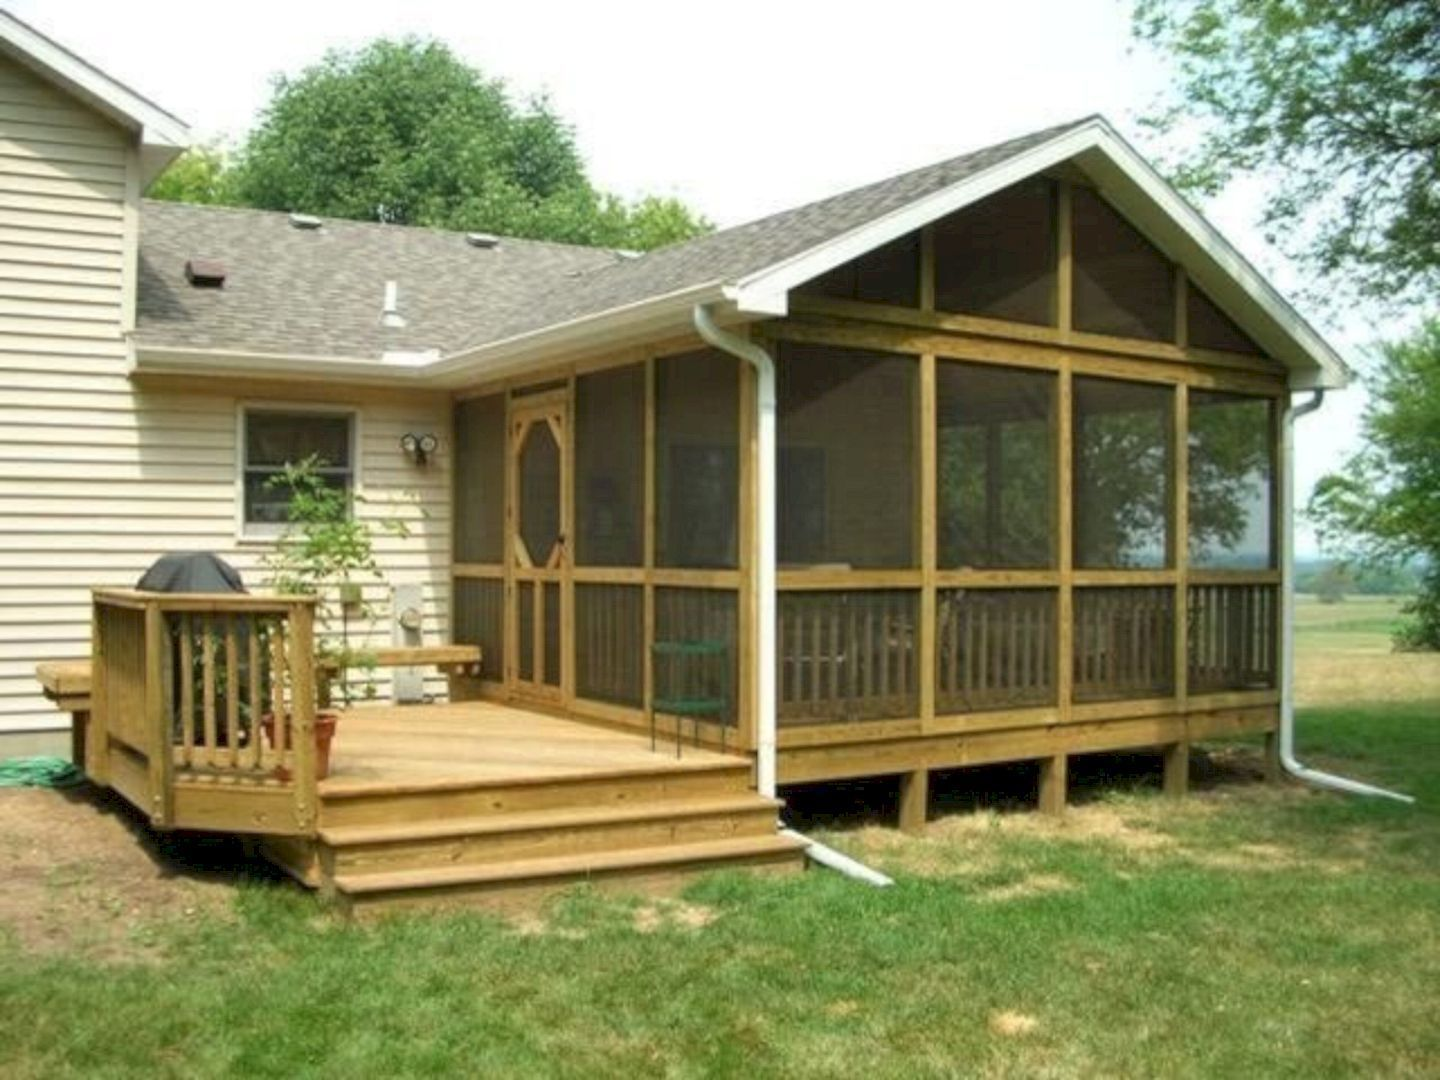 8 Ways To Have More Appealing Screened Porch Deck | Mobile ... on Enclosed Back Deck Ideas id=96352